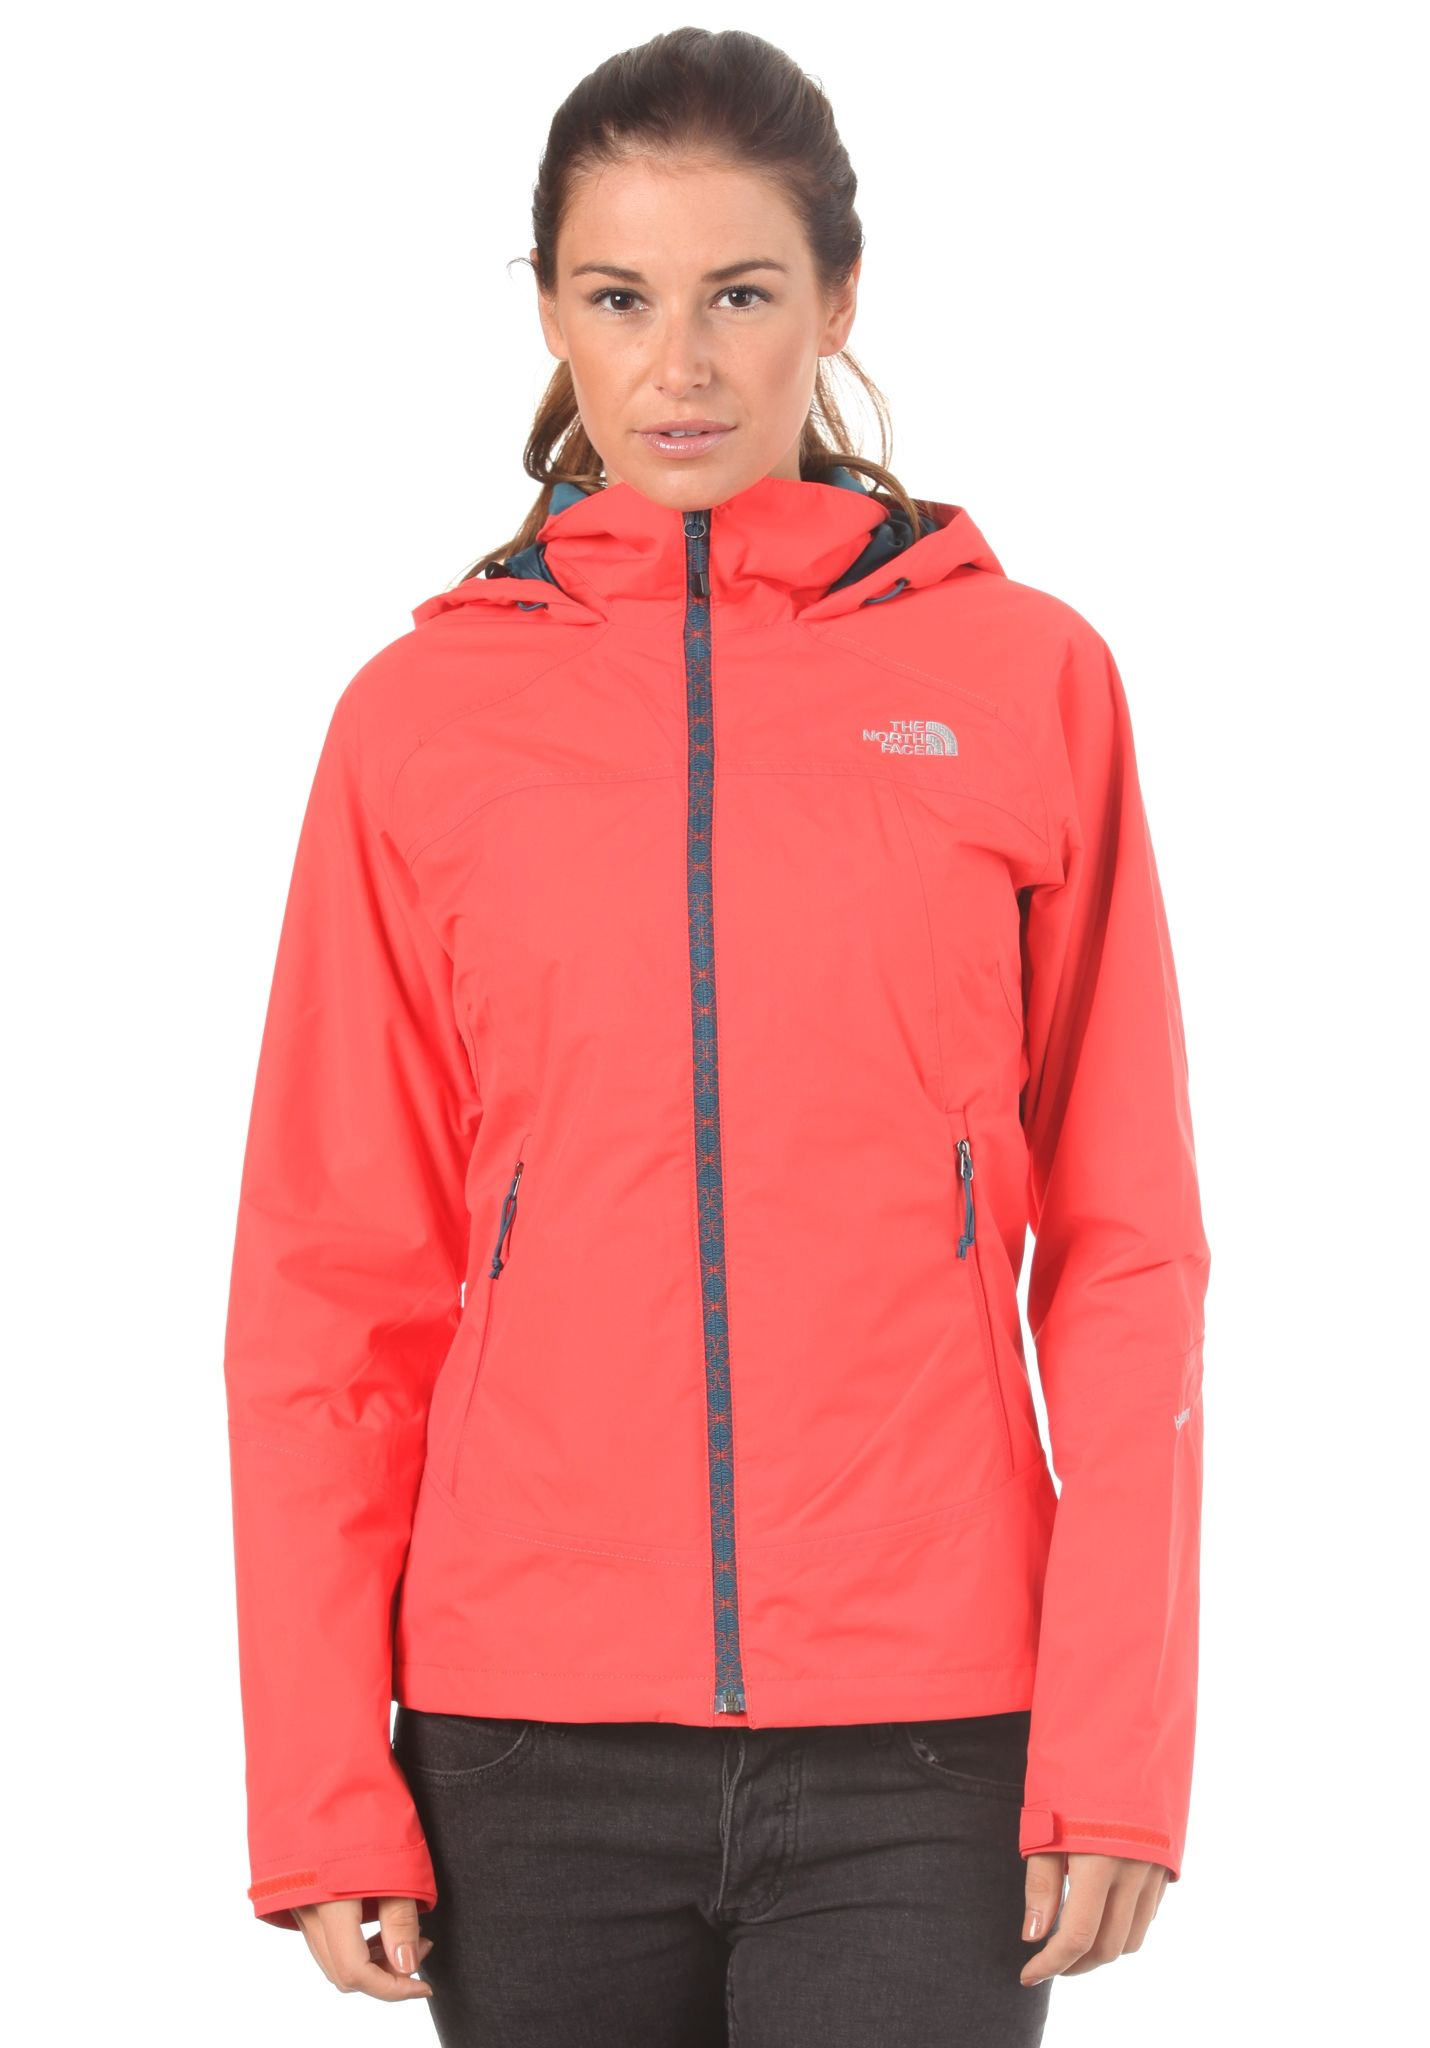 6aeb4491fce ... THE NORTH FACE StraTos Jacket - Functional Jacket for Women - Red -  Planet Sports ...